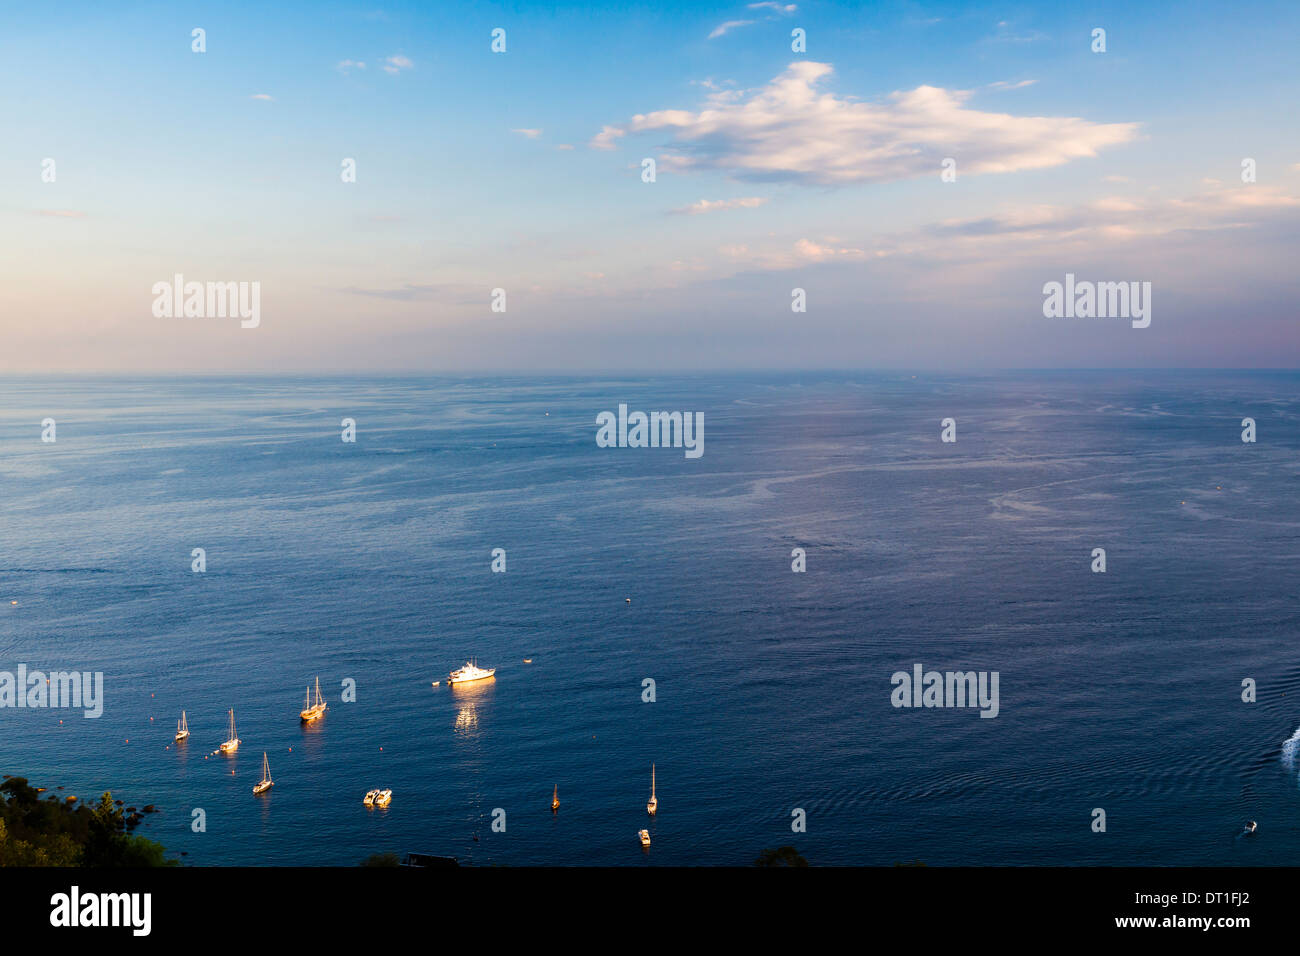 Boats on the Ionian Sea, part of the Mediterranean Sea at sunset, Taormina, East Coast of Sicily, Italy, Mediterranean, Europe - Stock Image